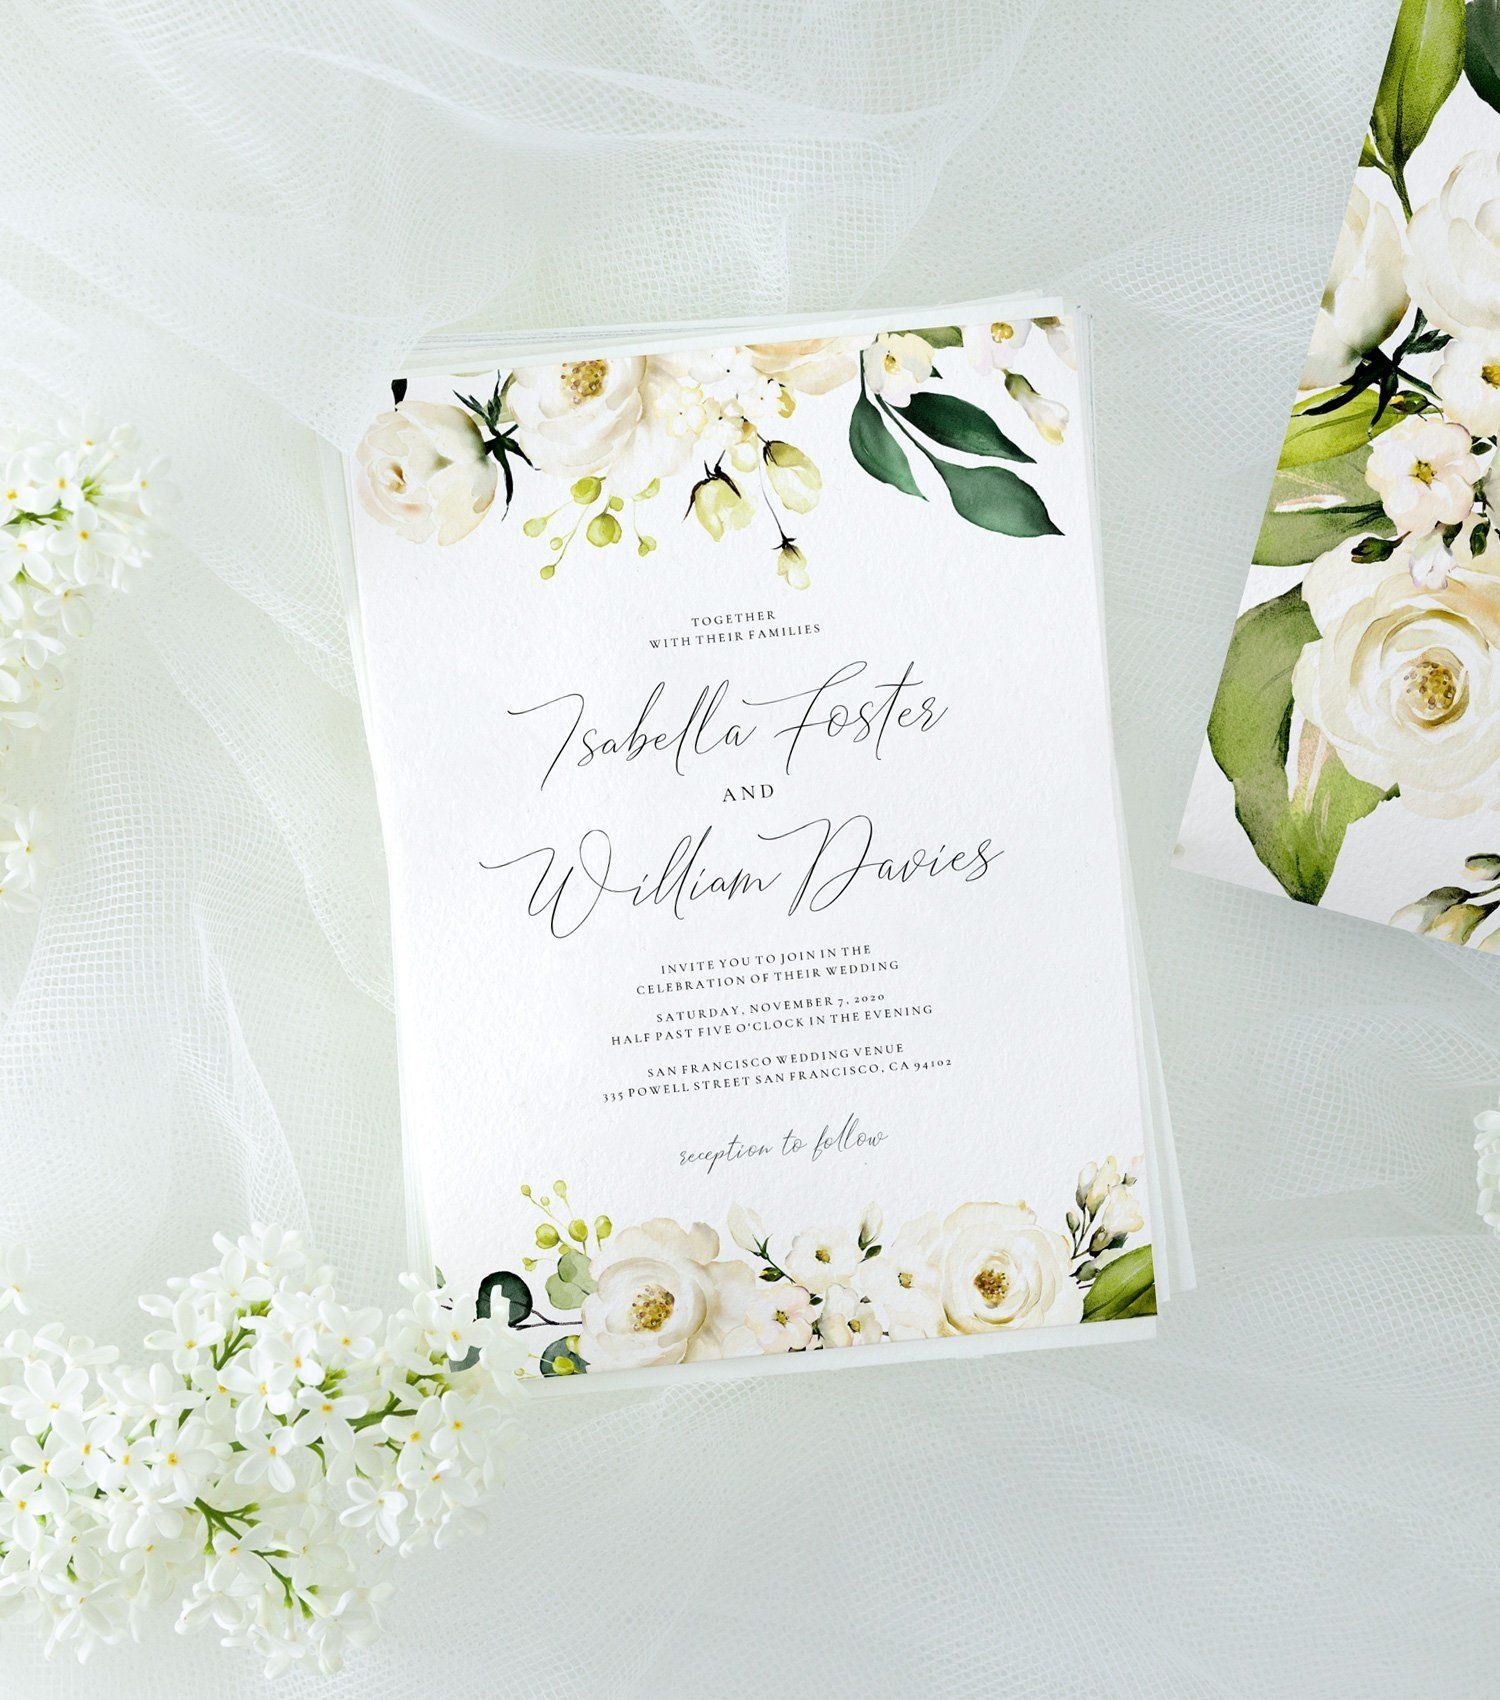 Wedding Invitation Template With Watercolor White Roses Etsy In 2020 Wedding Invitation Templates Floral Wedding Invitations Modern Wedding Invitation Wording